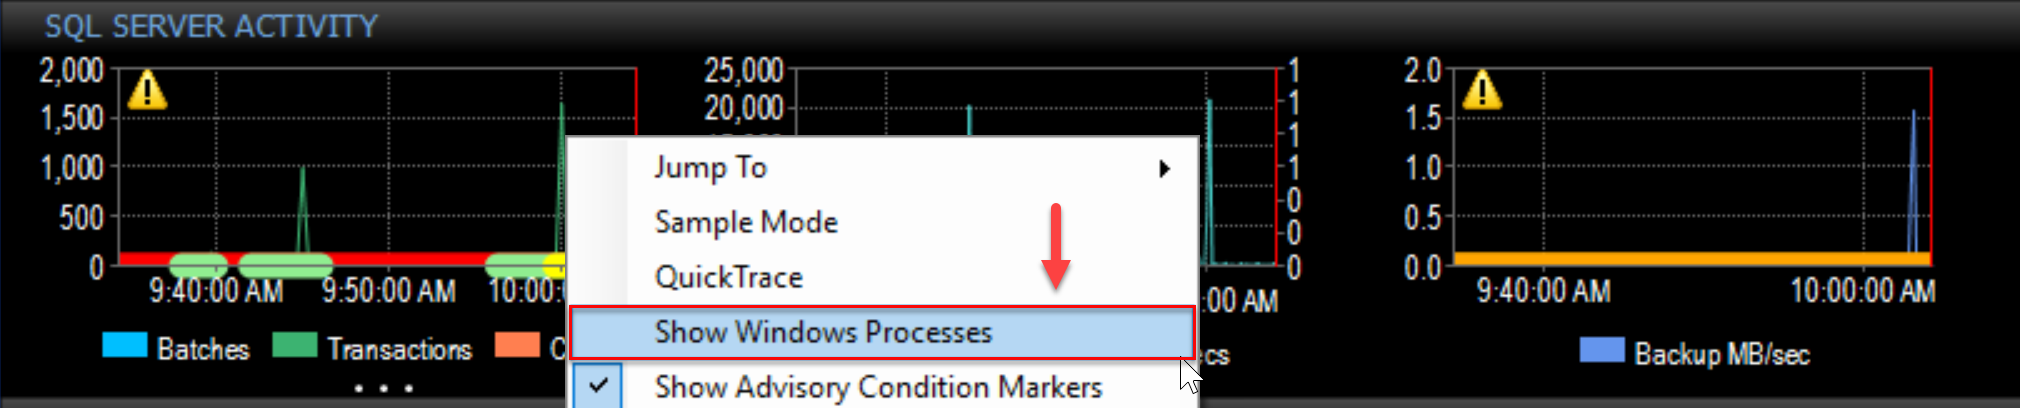 SentryOne Performance Analysis Dashboard Show Windows Processes context menu